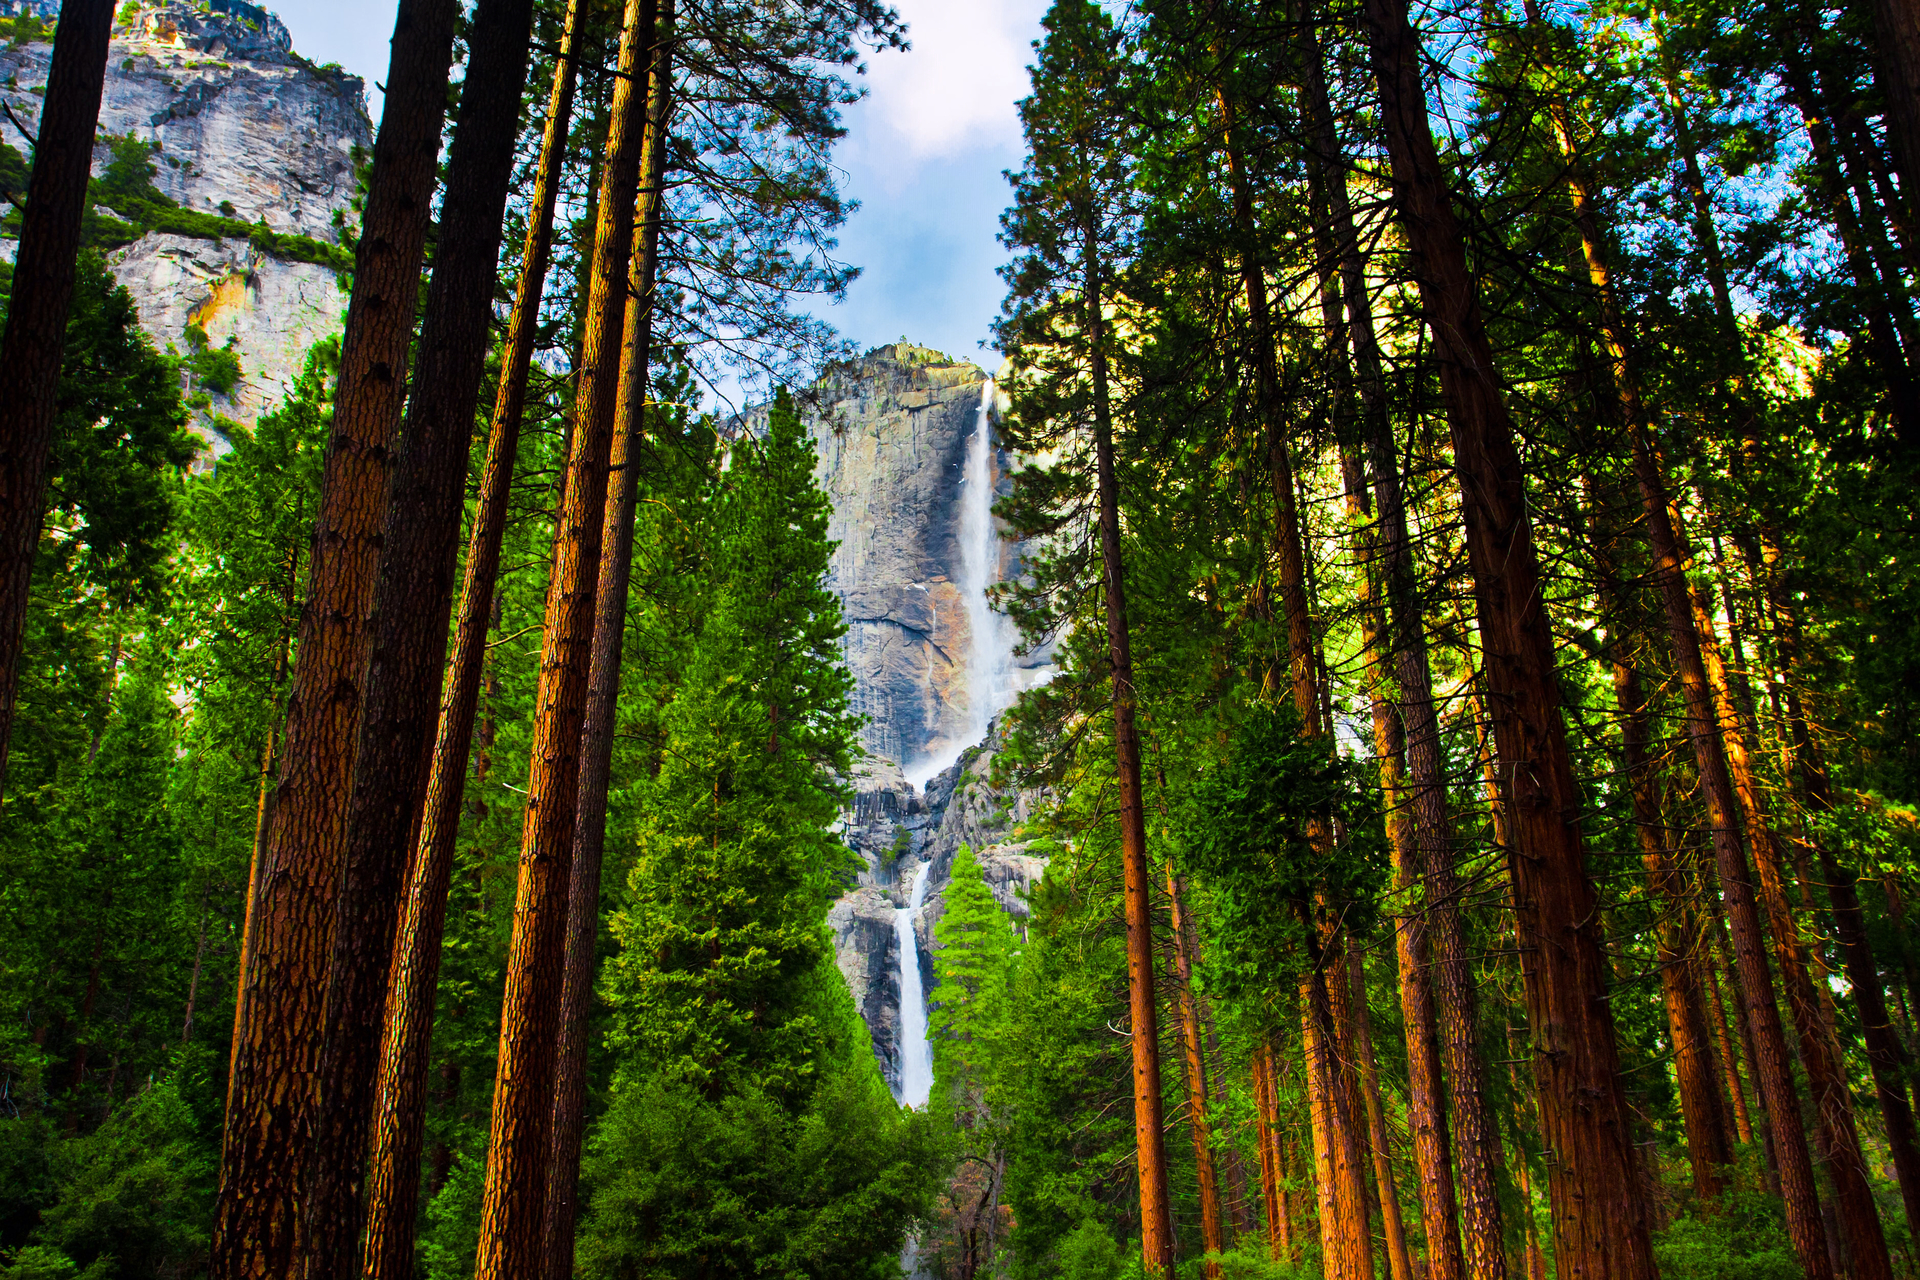 Yosemite falls among sequoias in Yosemite national park